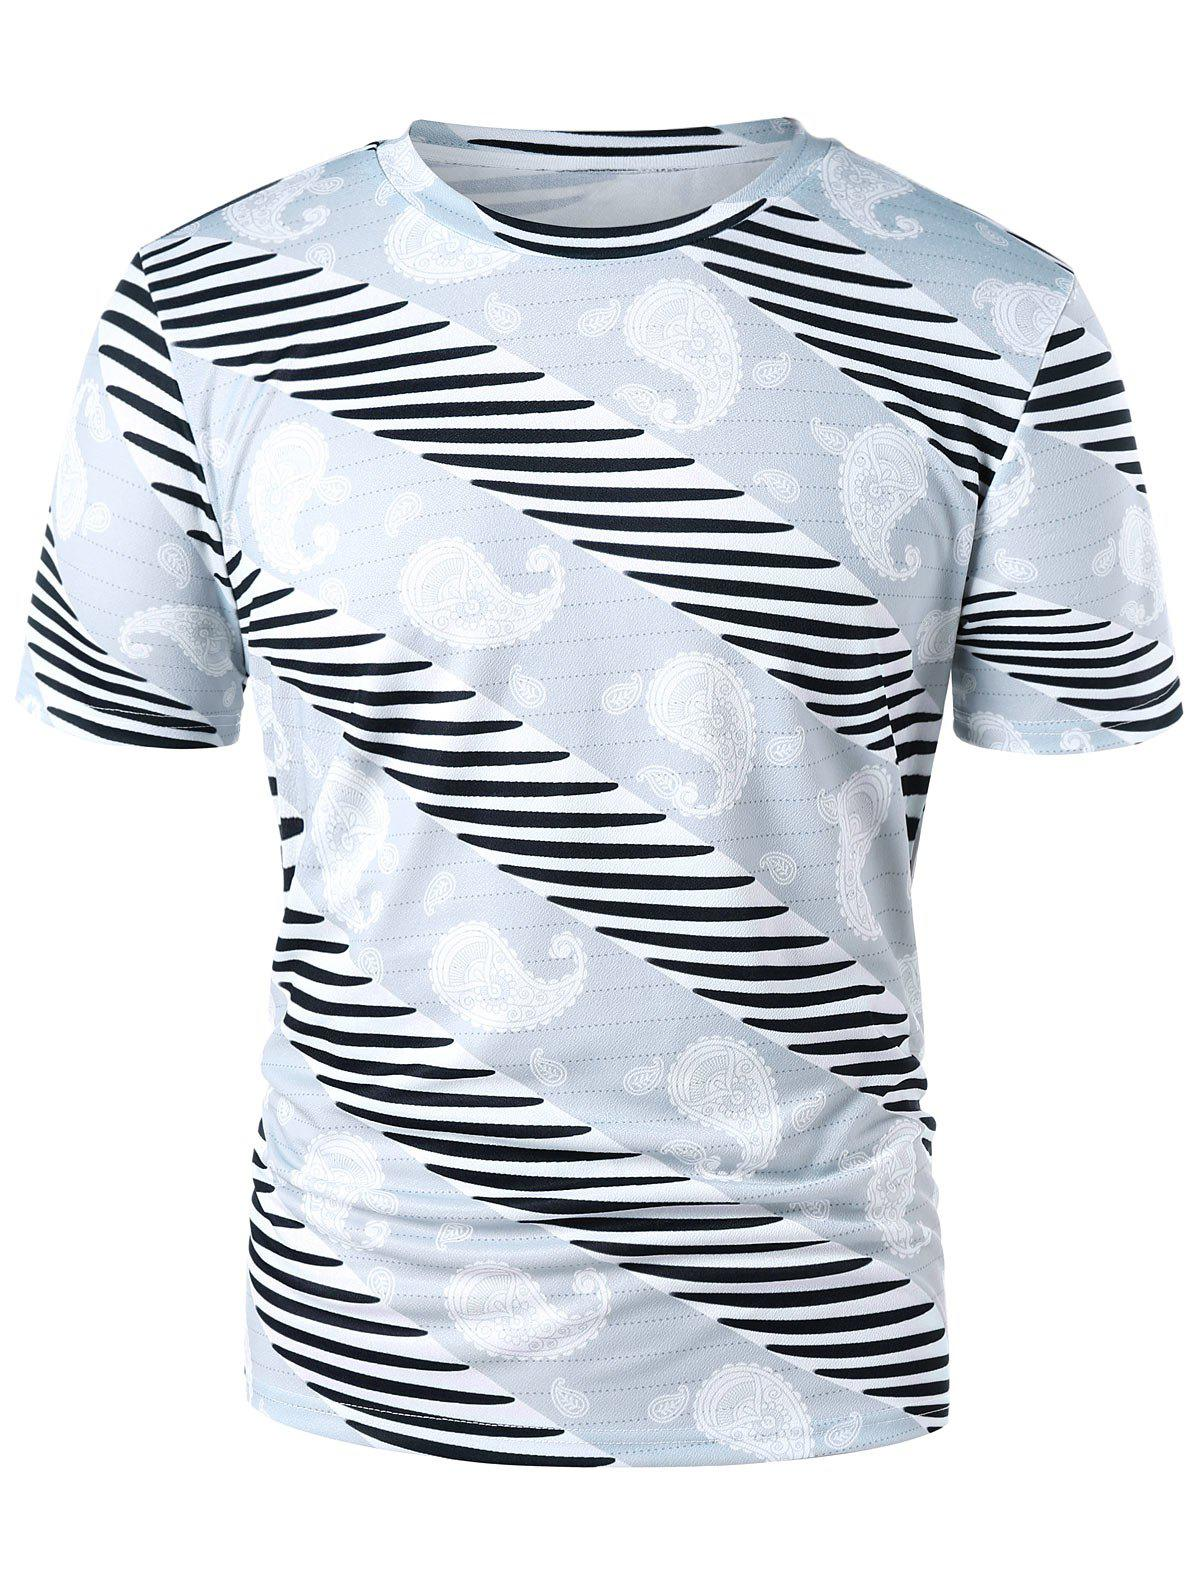 Paisley and Stripe Print Casual T-shirt